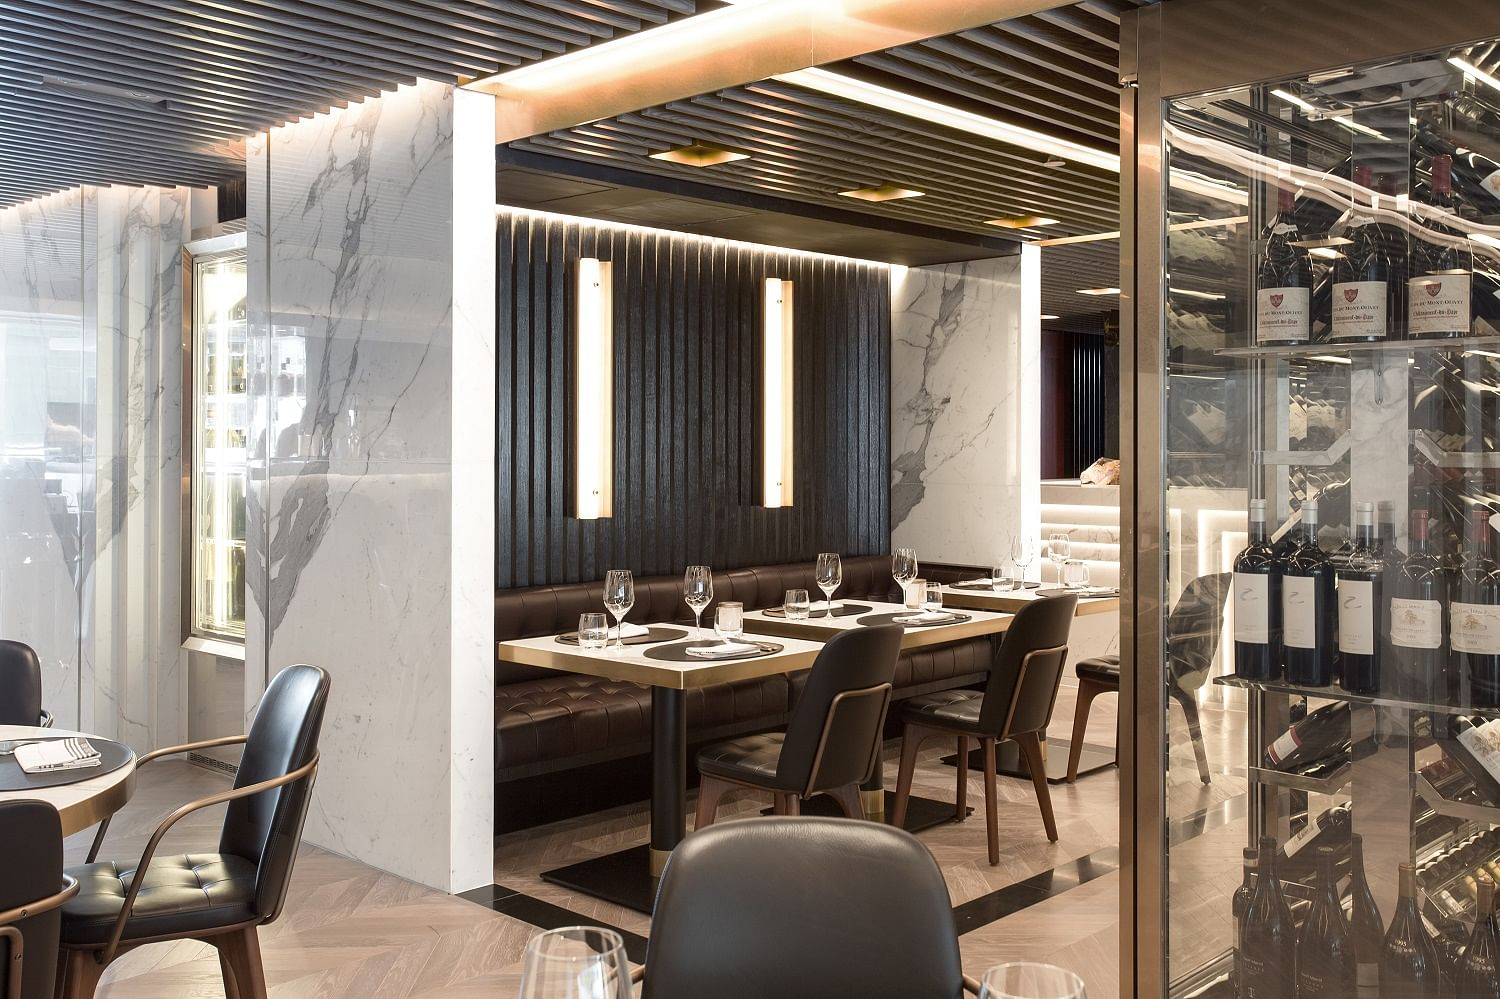 home decor ideas use black and gold home decor singapore the minimalist decor throughout the restaurant allow the characteristics of these materials to shine through we especially love the shade of amber copper